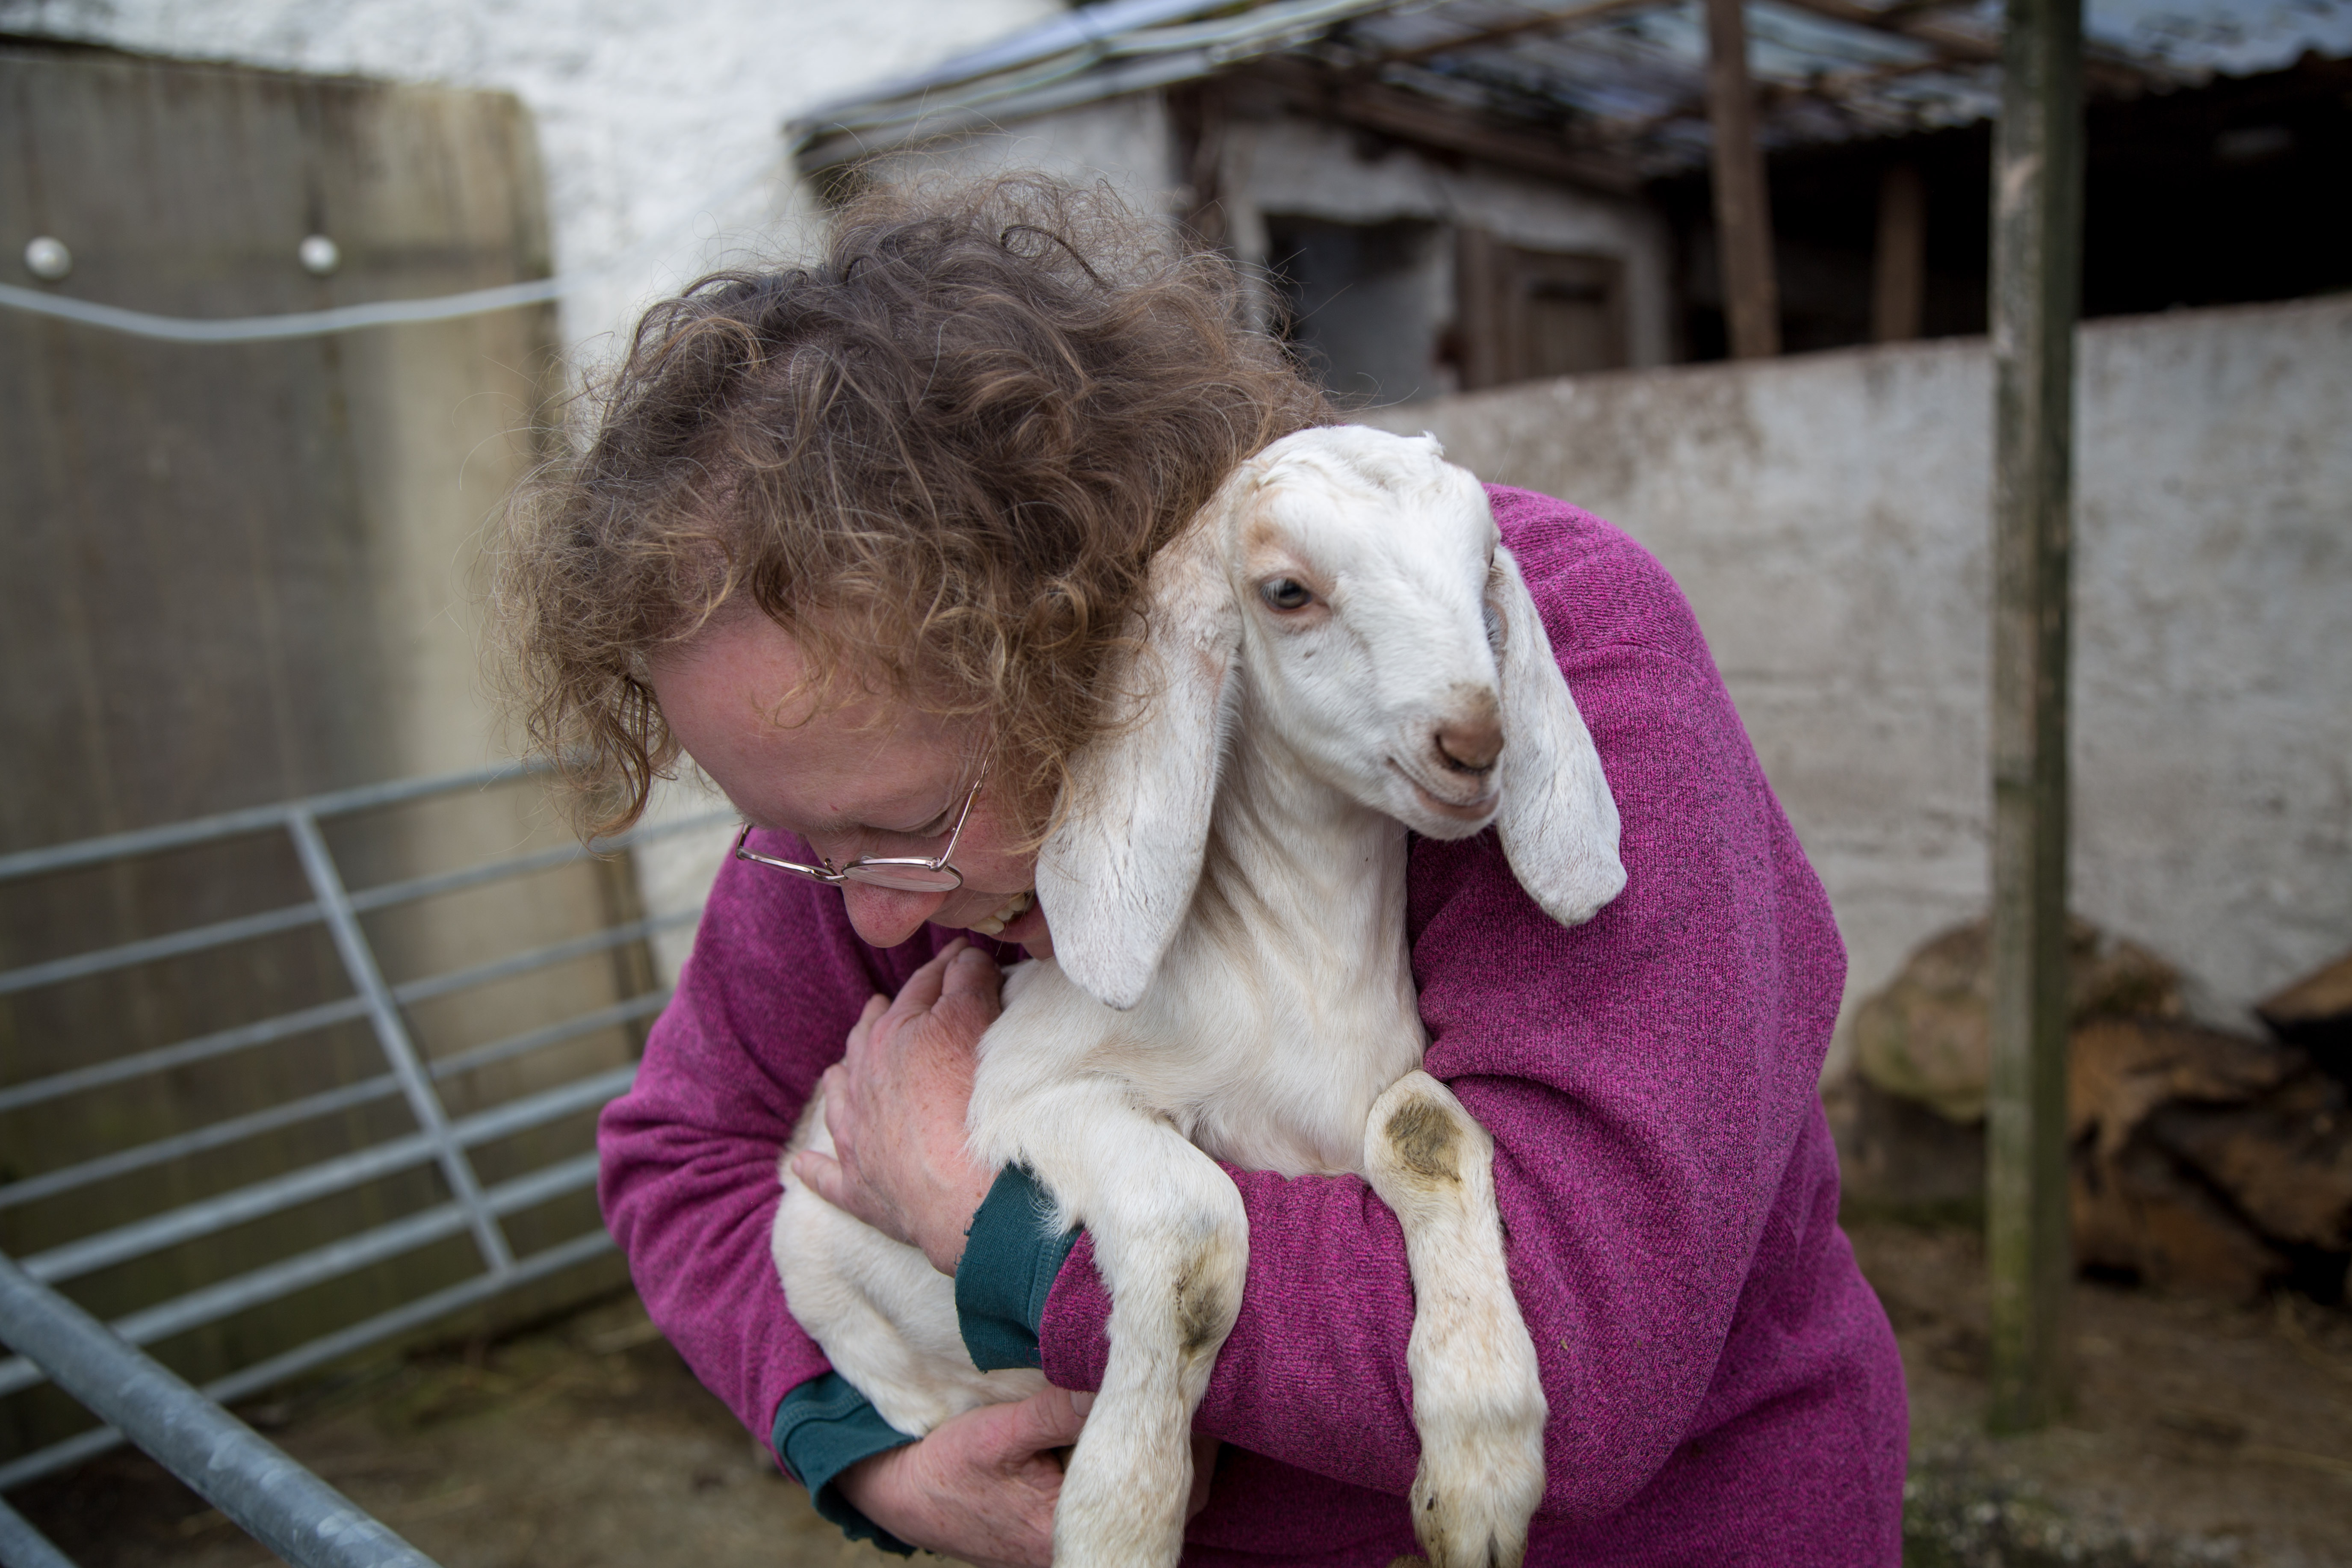 Sue Smith playing with her kids at her home in Coverack Bridges, Cornwall. April 2015.